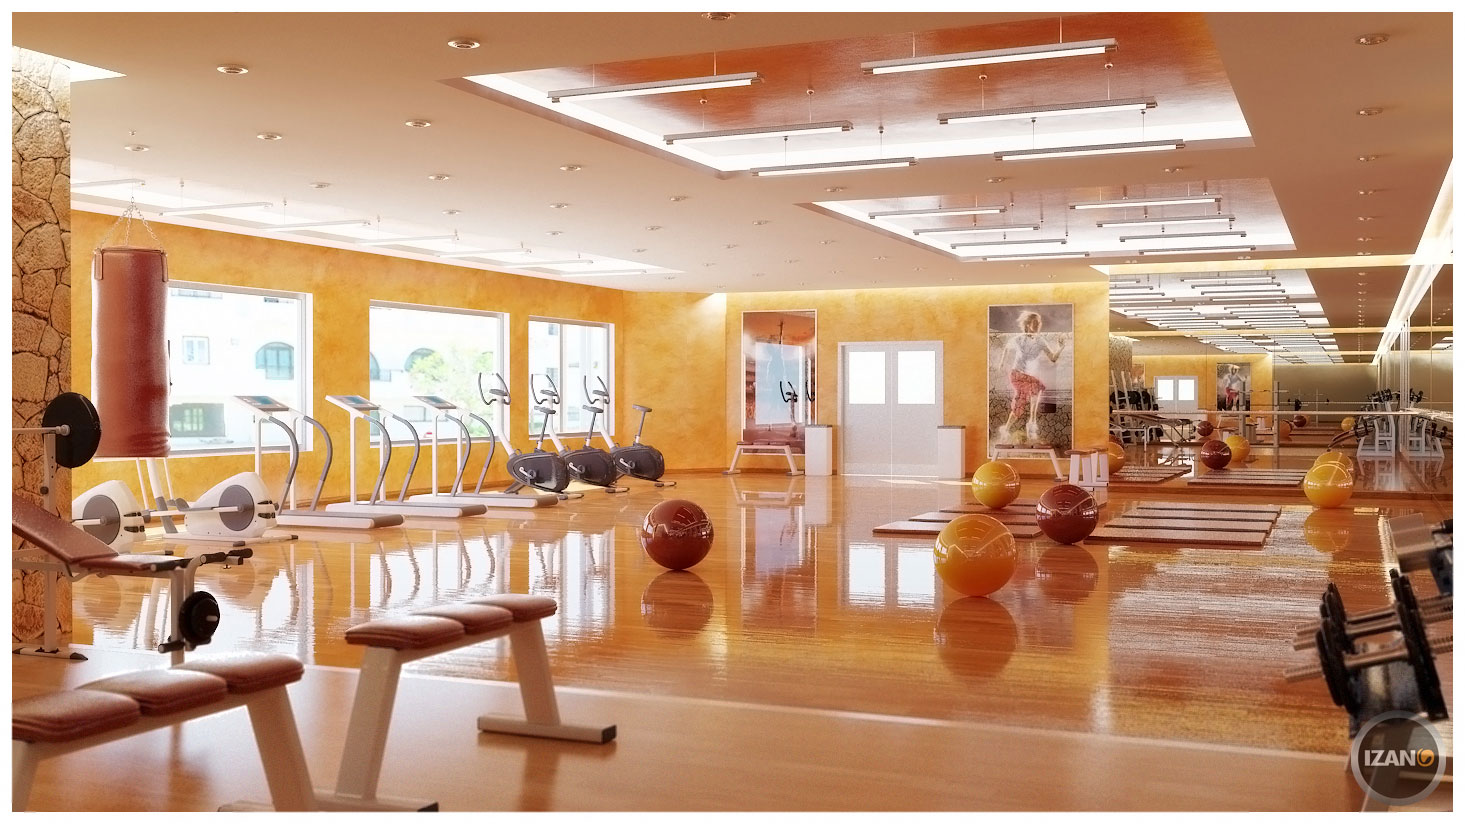 Home gym design tips and pictures - Beautiful home interior color ideas ...